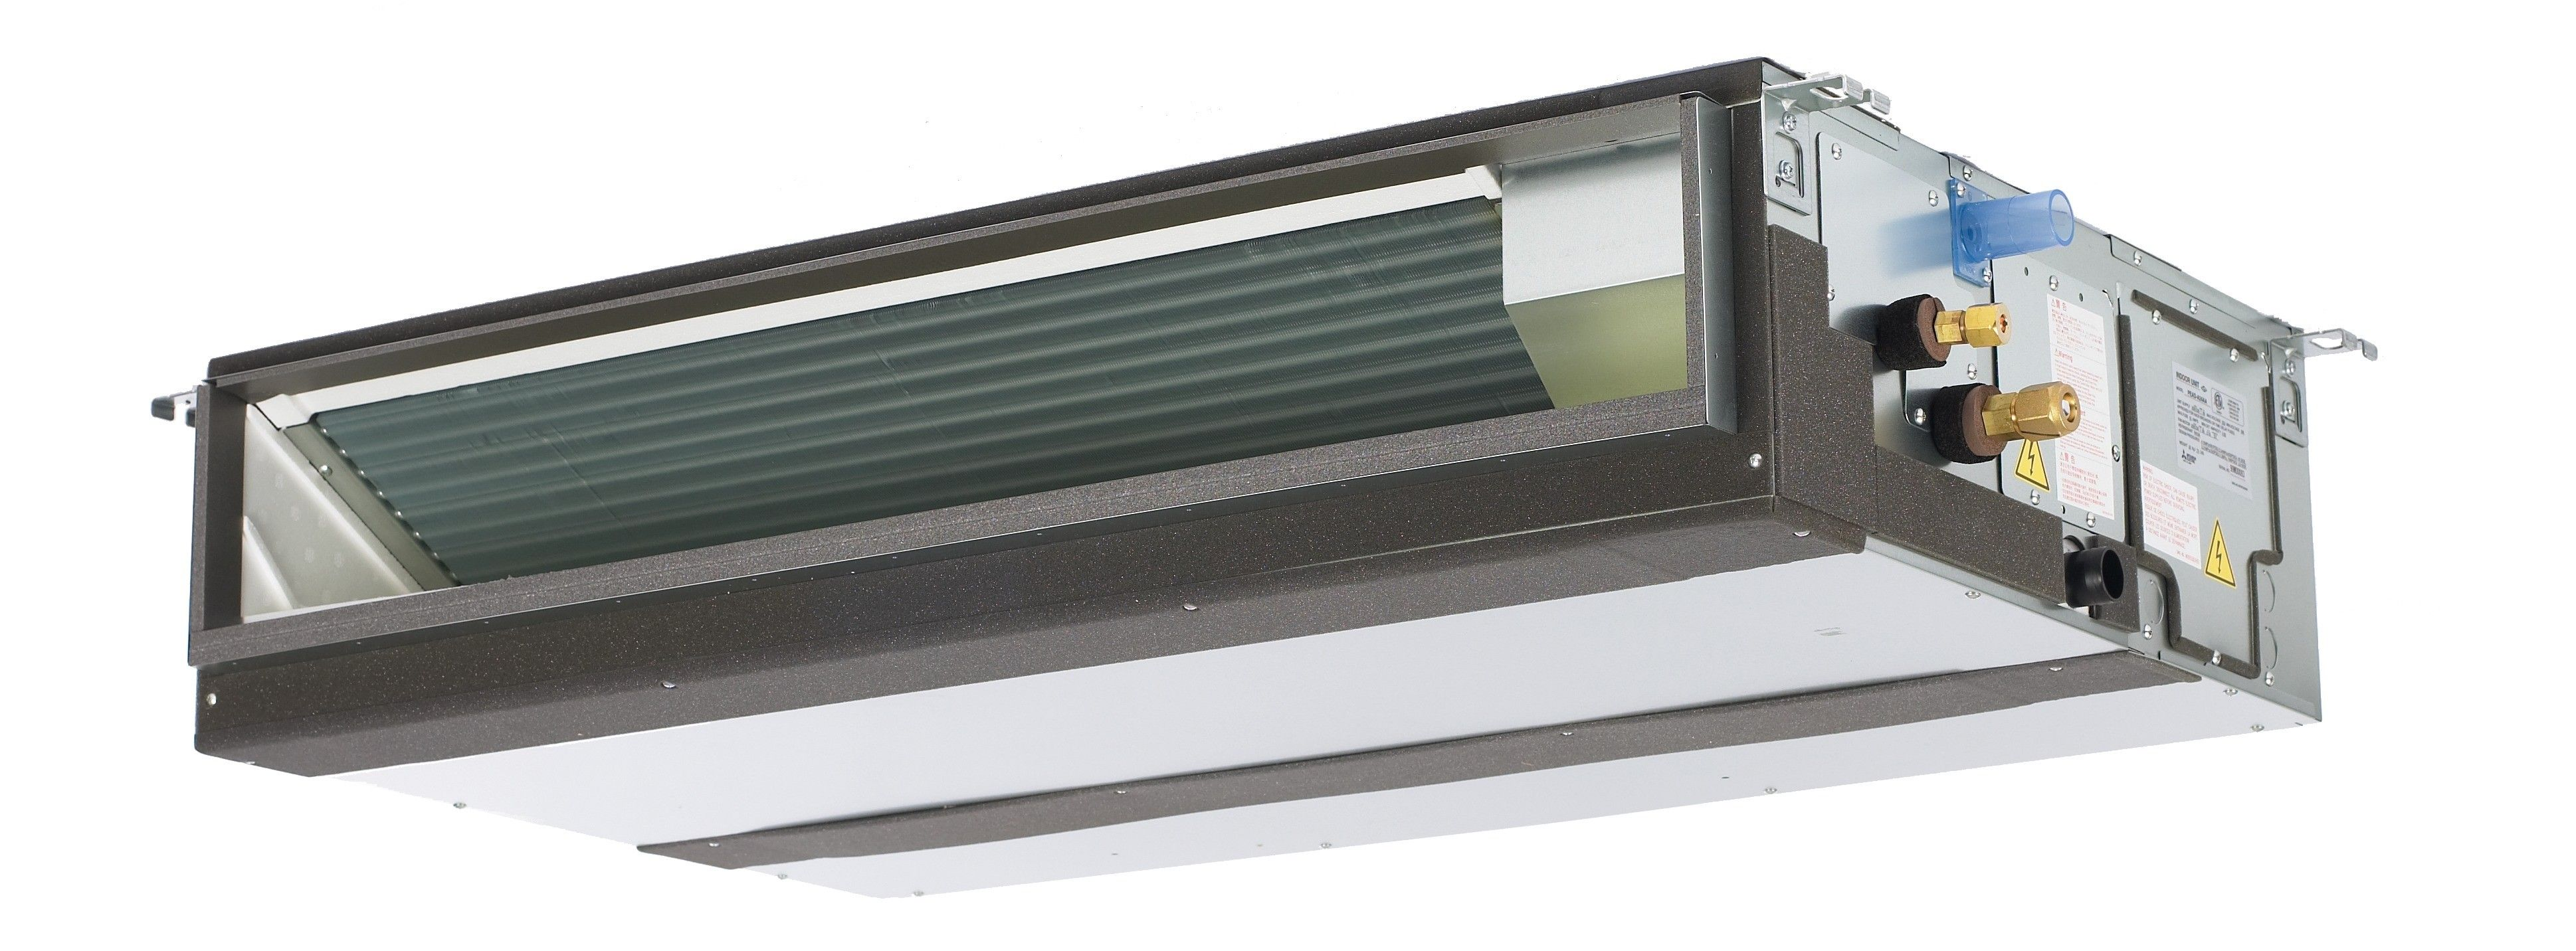 Mitsubishi Ductless 42k Btu Mitsubishi Pead Horizontal Ducted Indoor Unit In Ductless